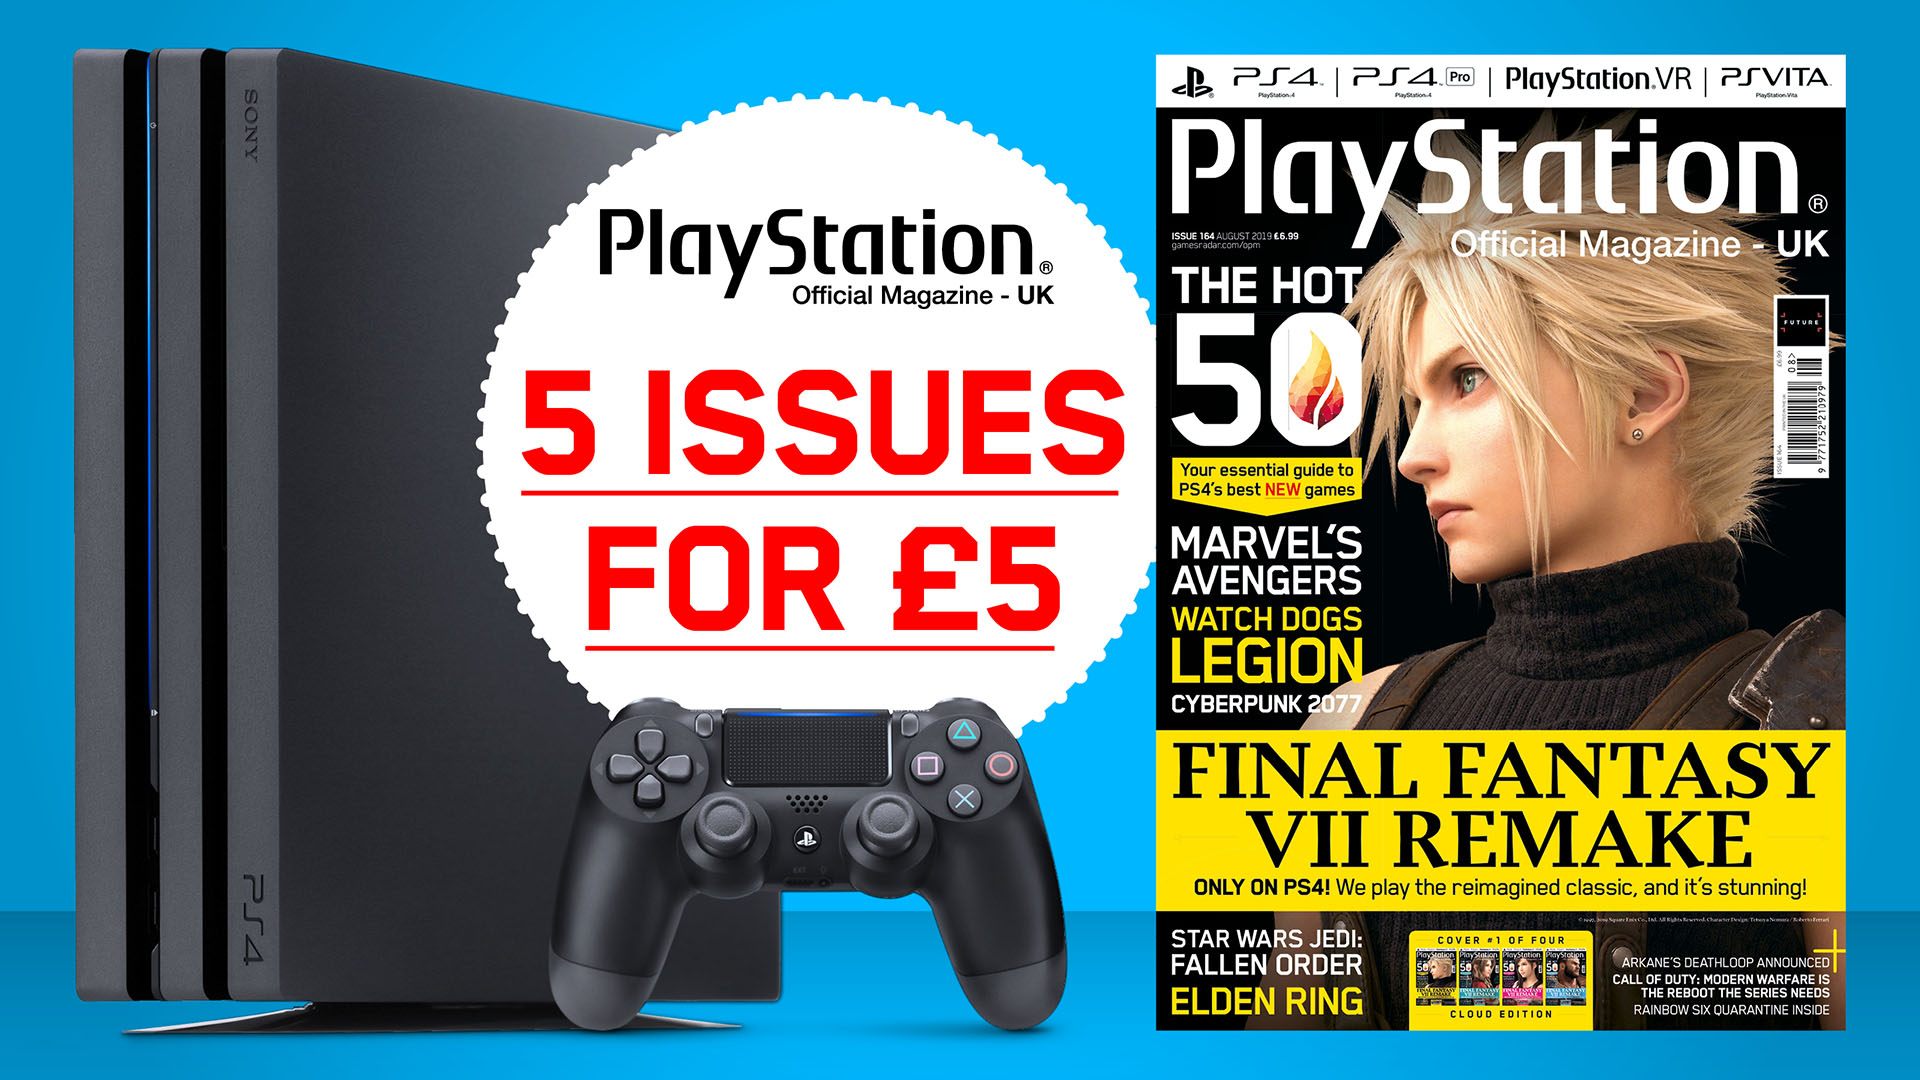 Summer sale! Get 5 issues of Official PlayStation Magazine